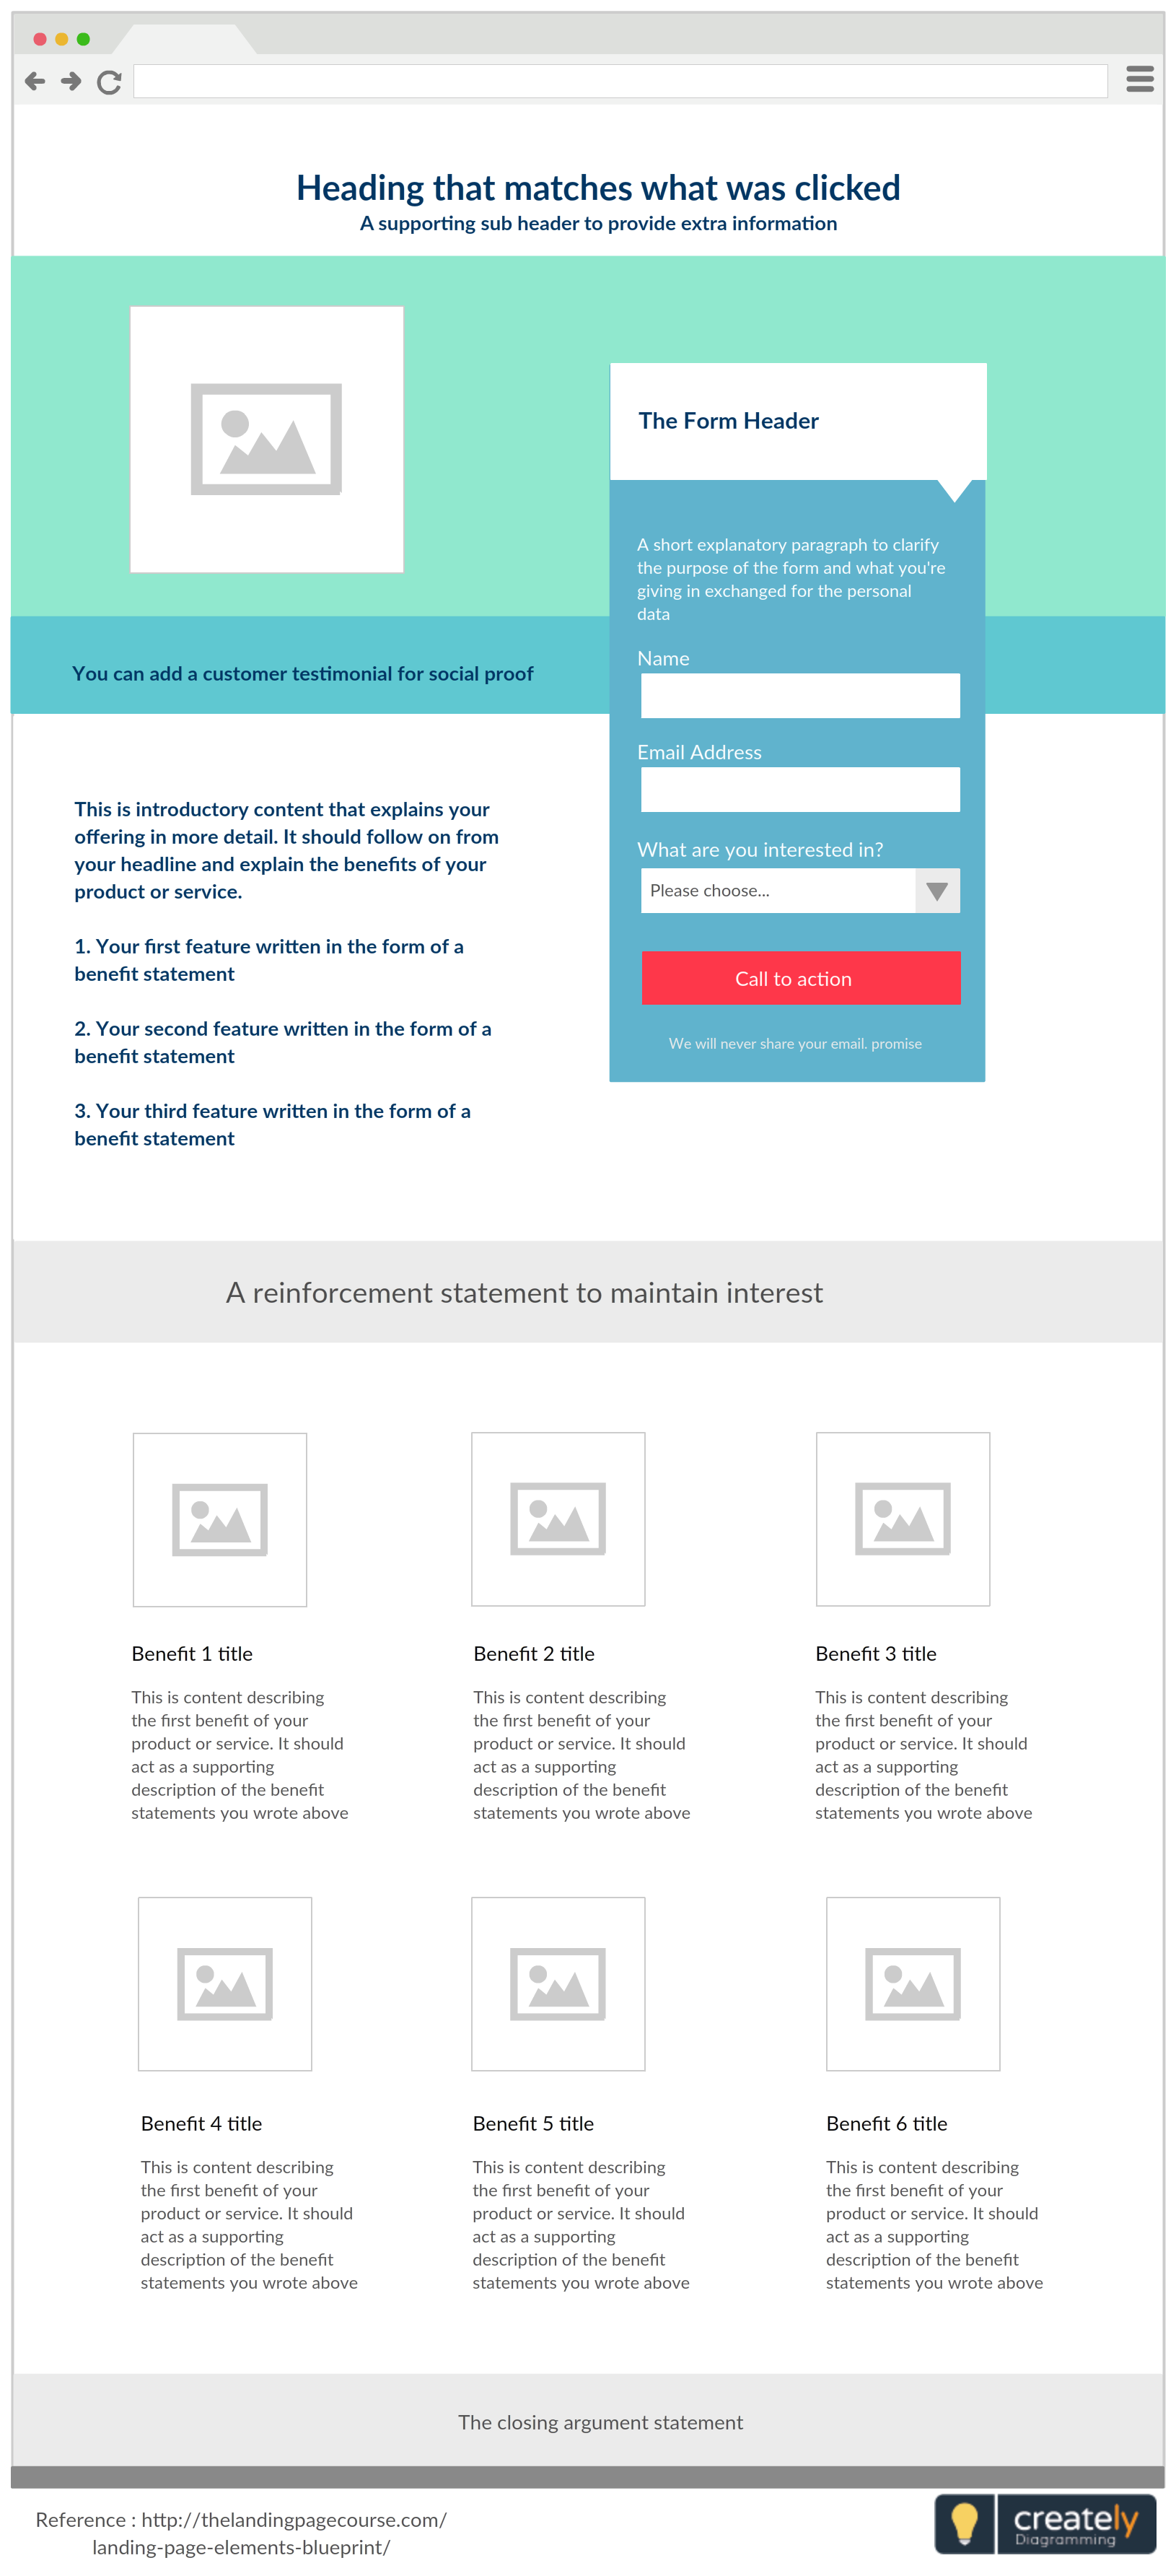 Elements Of A Lead Generation Landing Page Click On The Image To Edit Online And Download As Png Image Wir Landing Page Web Mockup Lead Generation Marketing